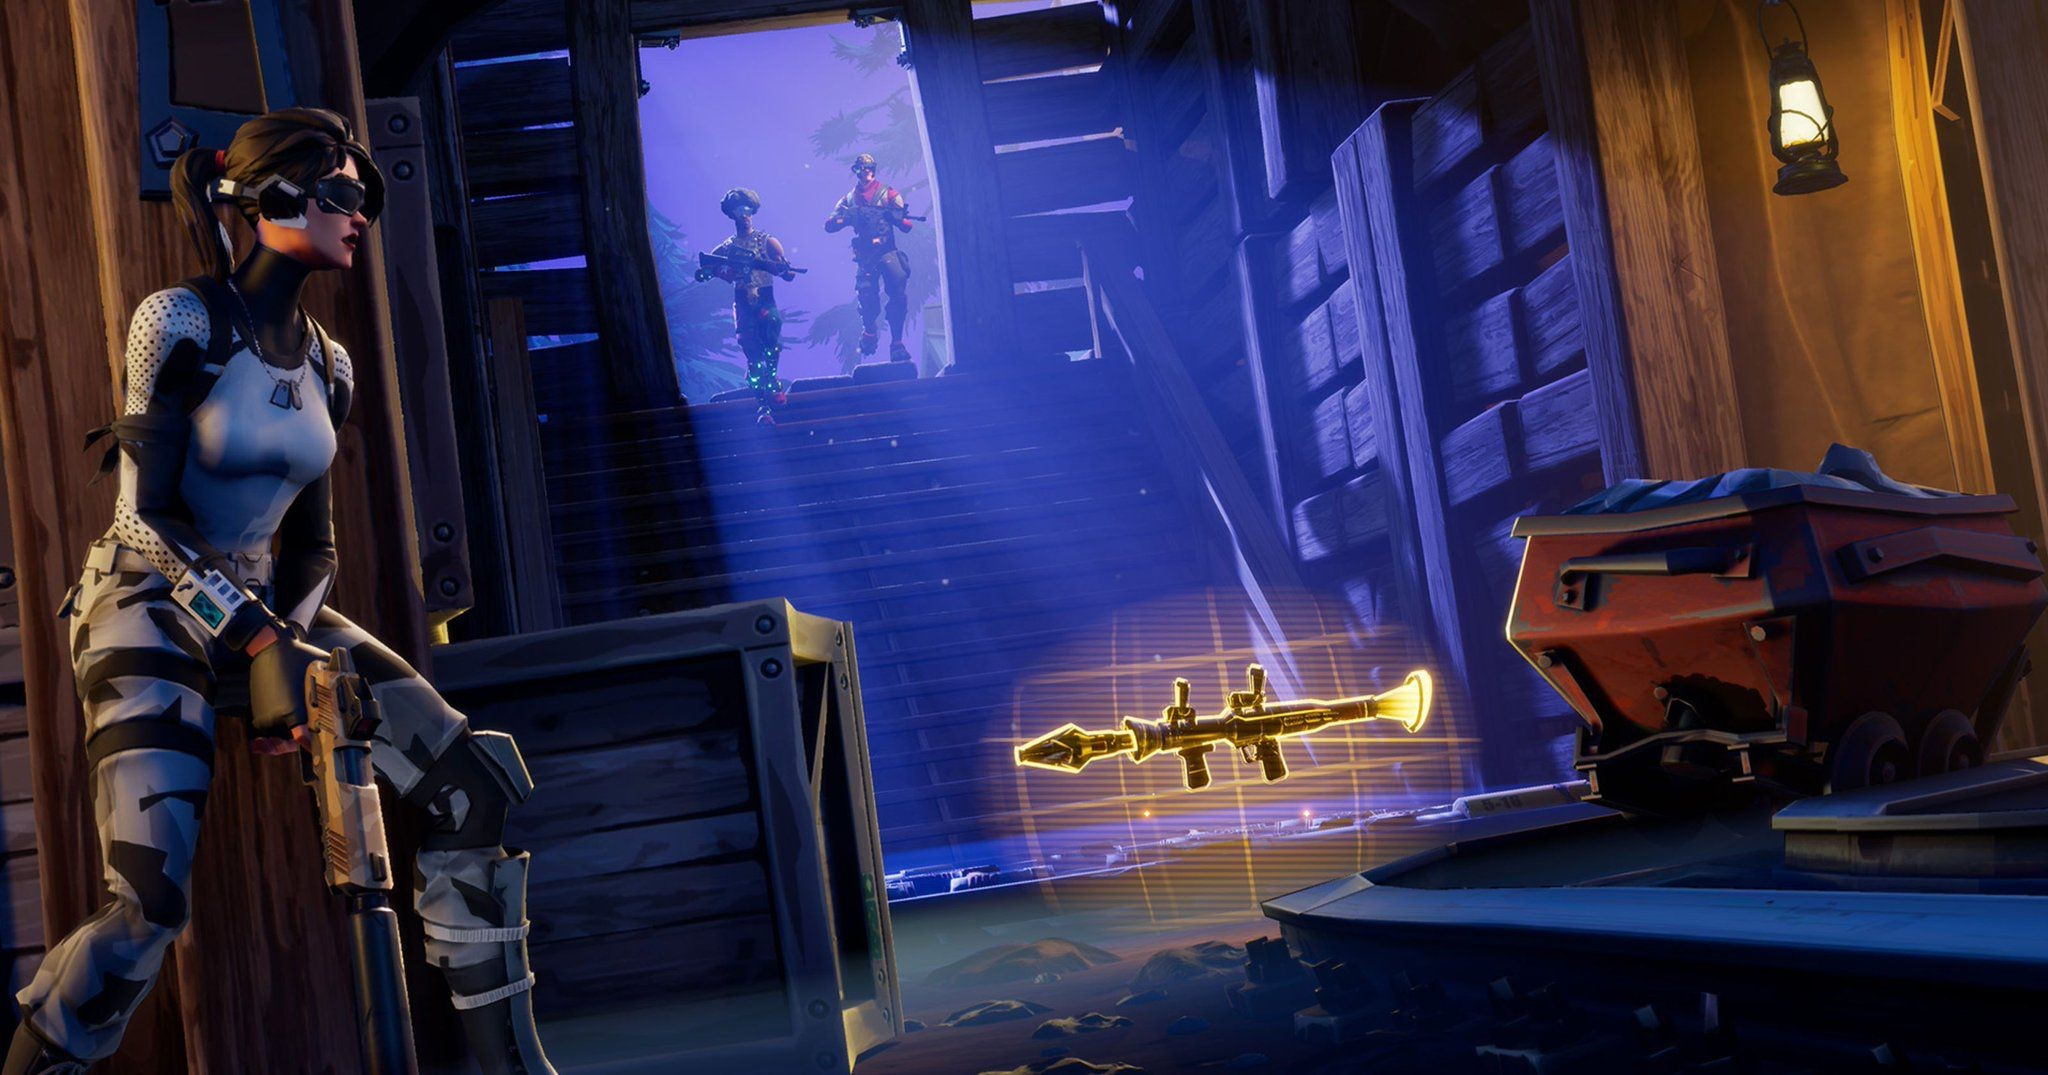 Fortnite Bait Trapped Warehouse Wallpaper